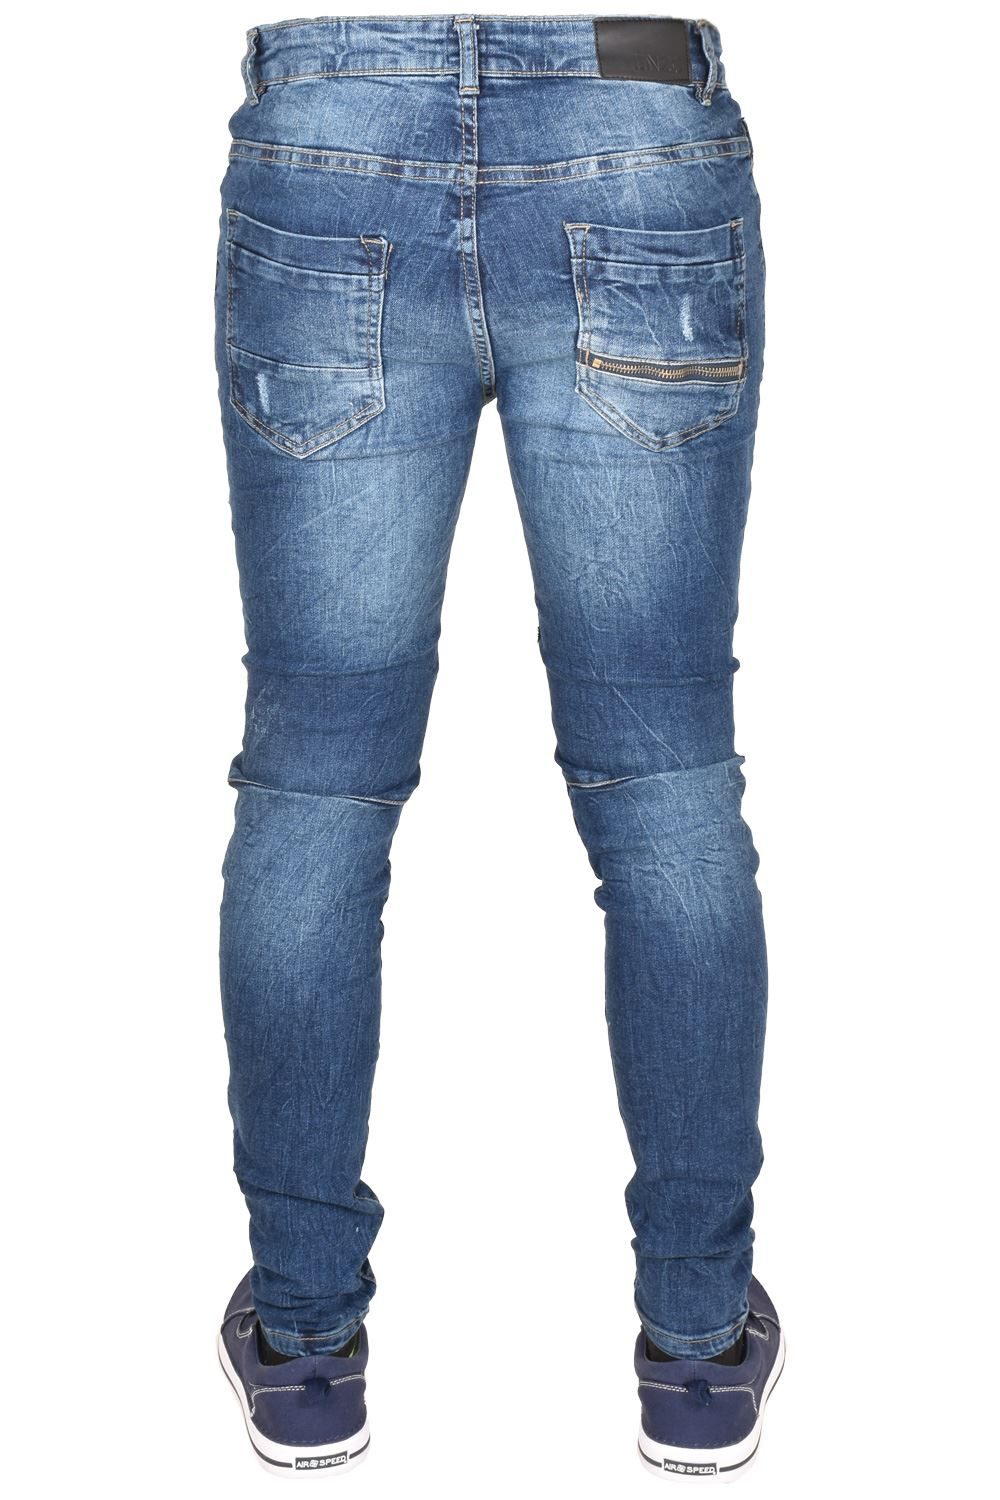 Enzo-Mens-Ripped-Jeans-Skinny-Slim-Fit-Denim-Pants-Casual-Trousers-Size-28-40 thumbnail 11